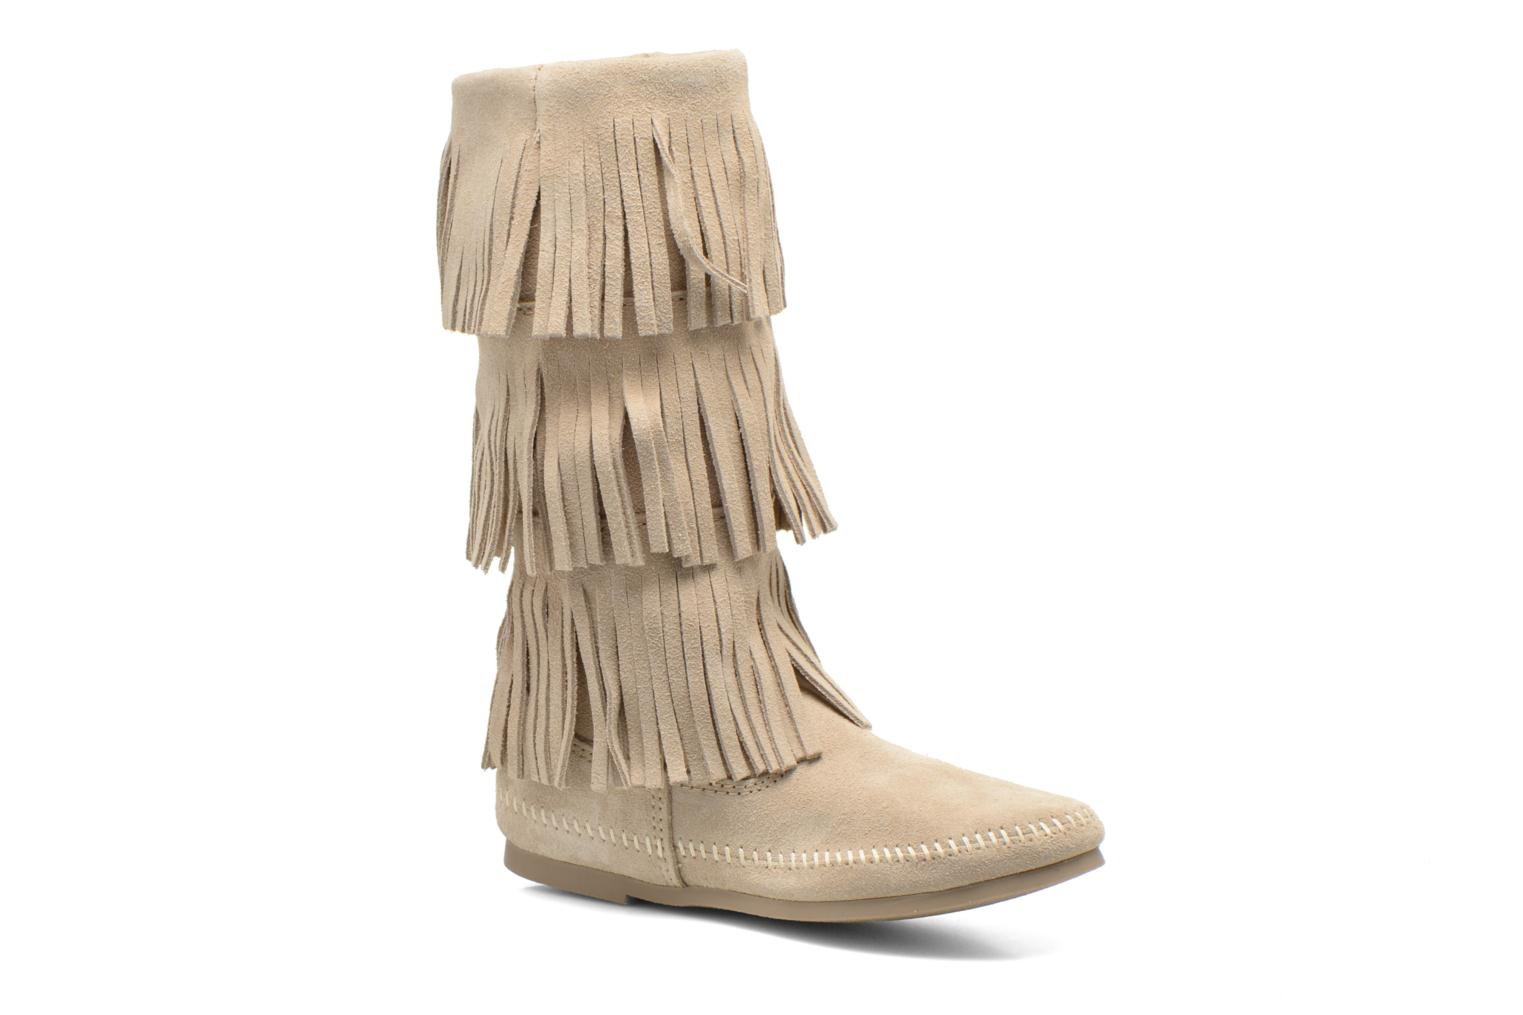 Bottines et boots Minnetonka 3 LAYER FRINGE BOOT Beige vue détail/paire